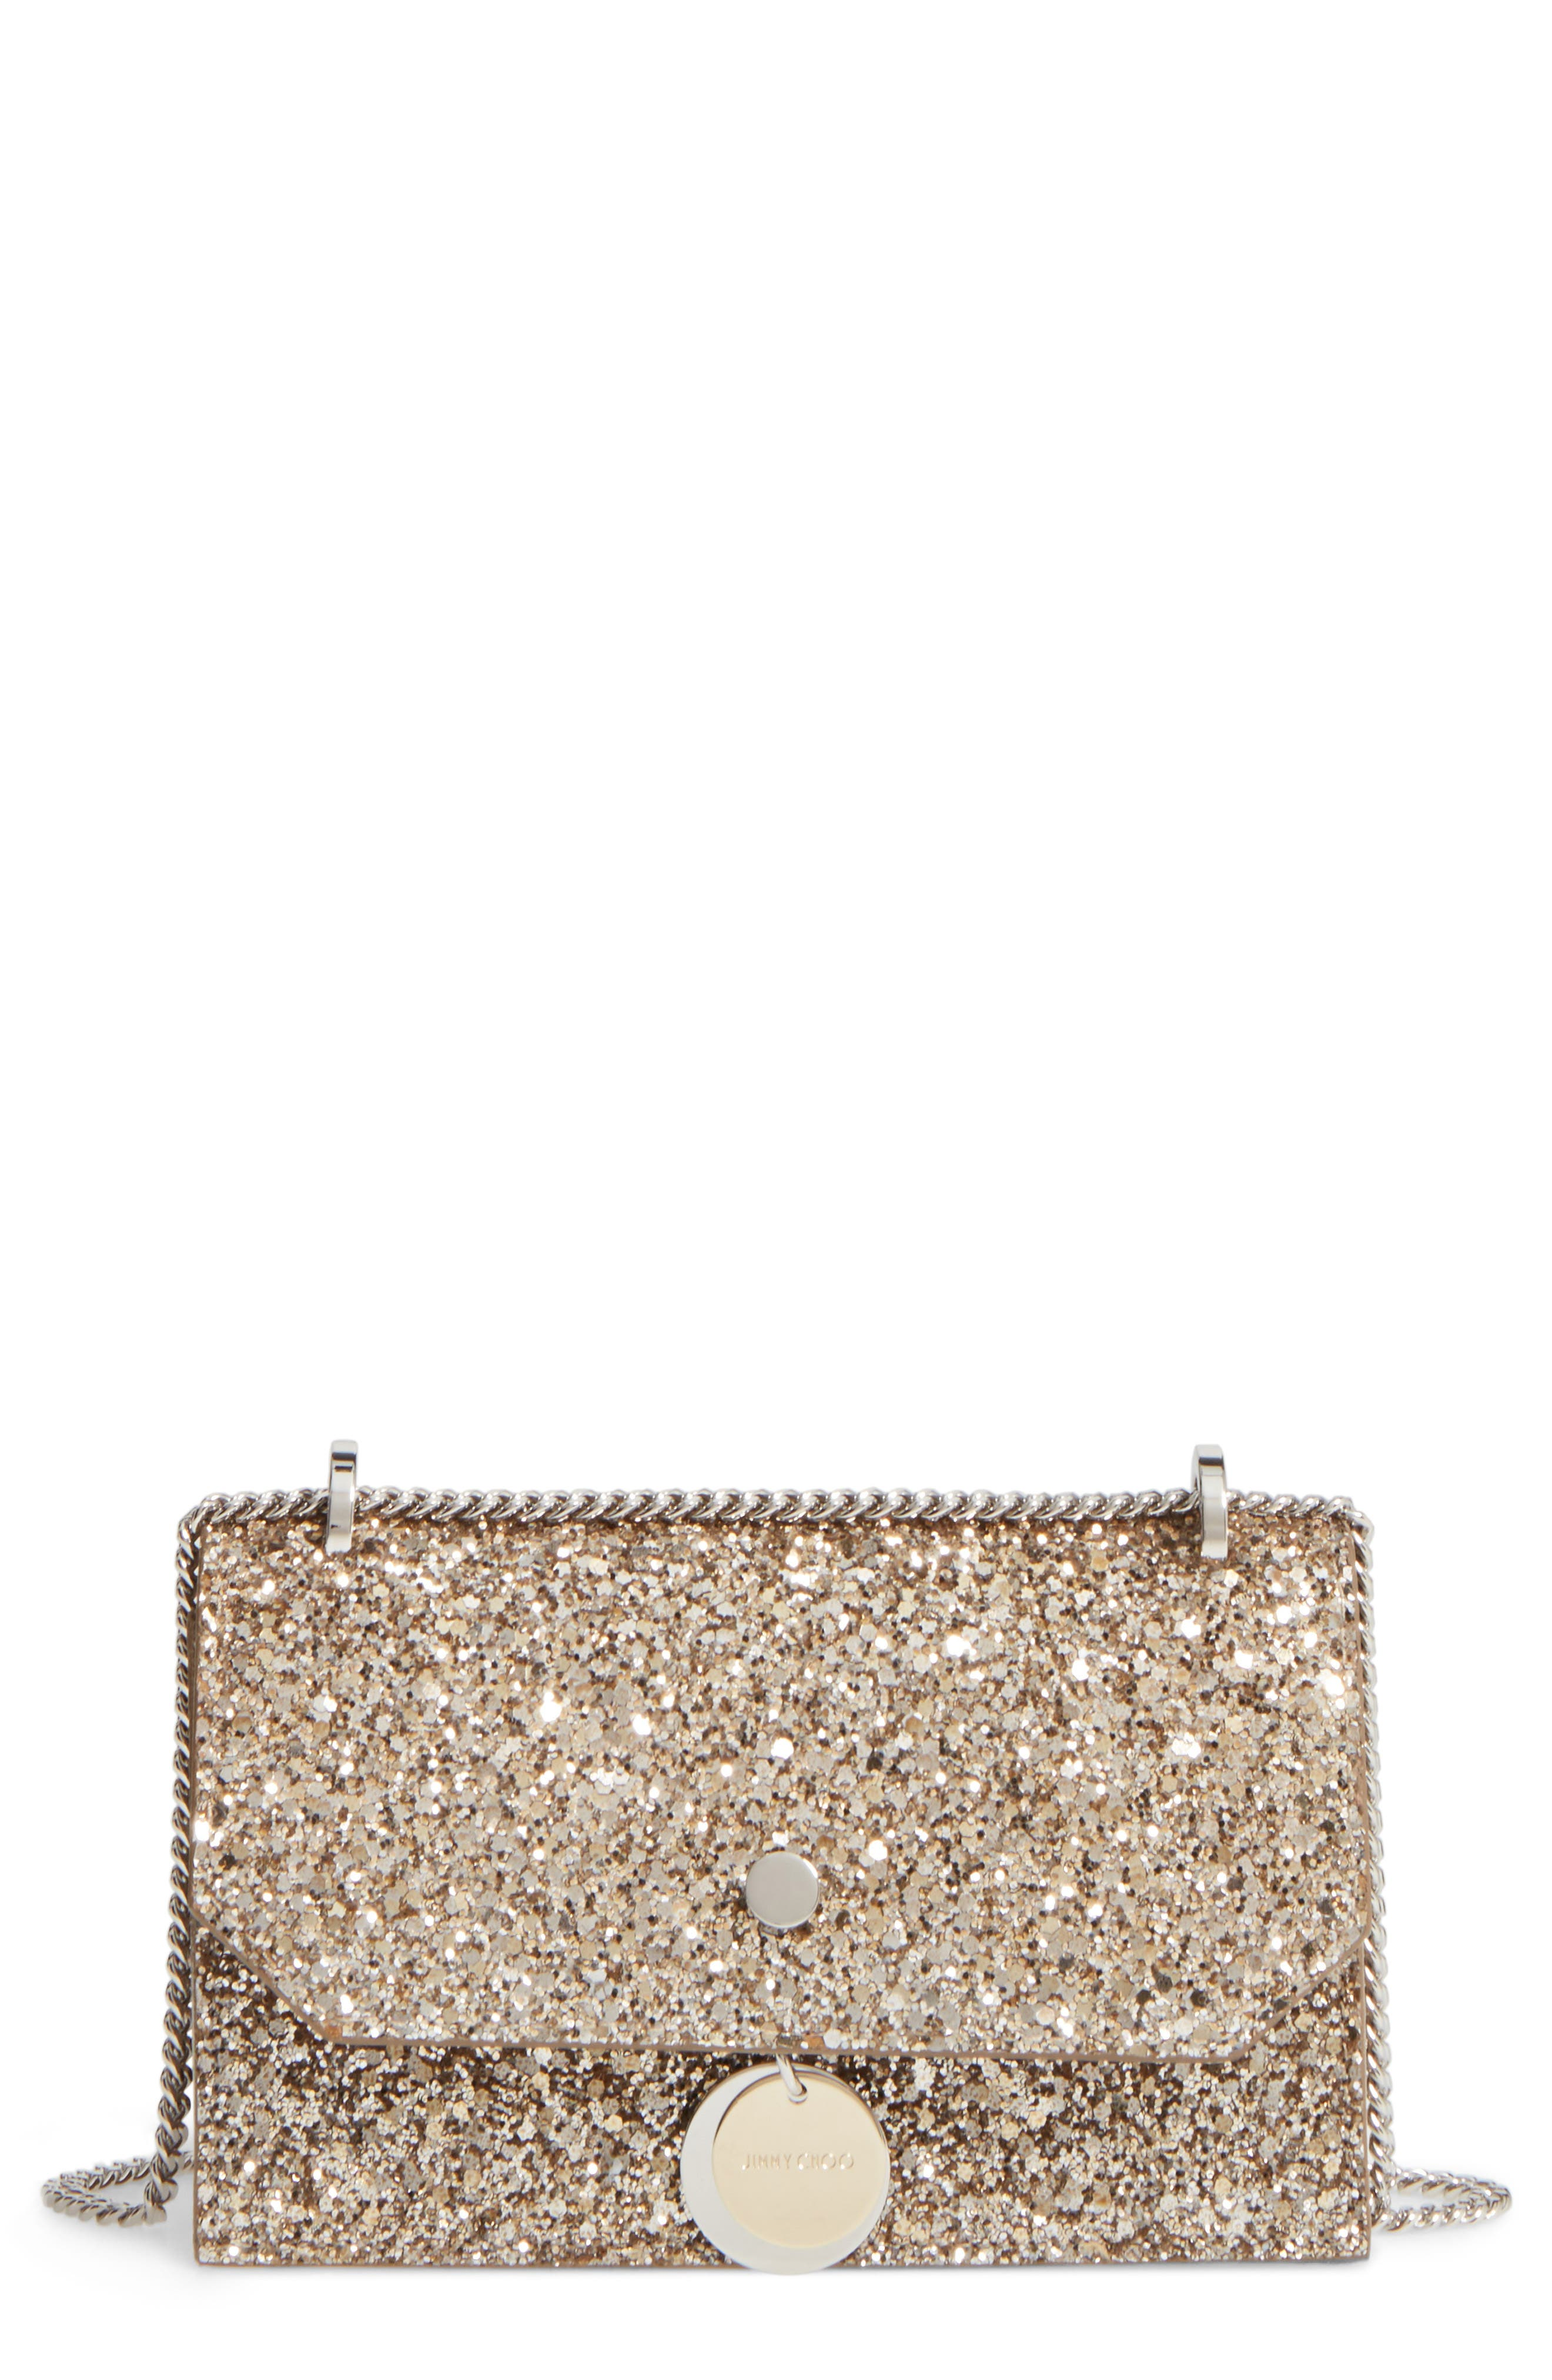 Jimmy Choo Finley Shadow Glitter Shoulder Bag